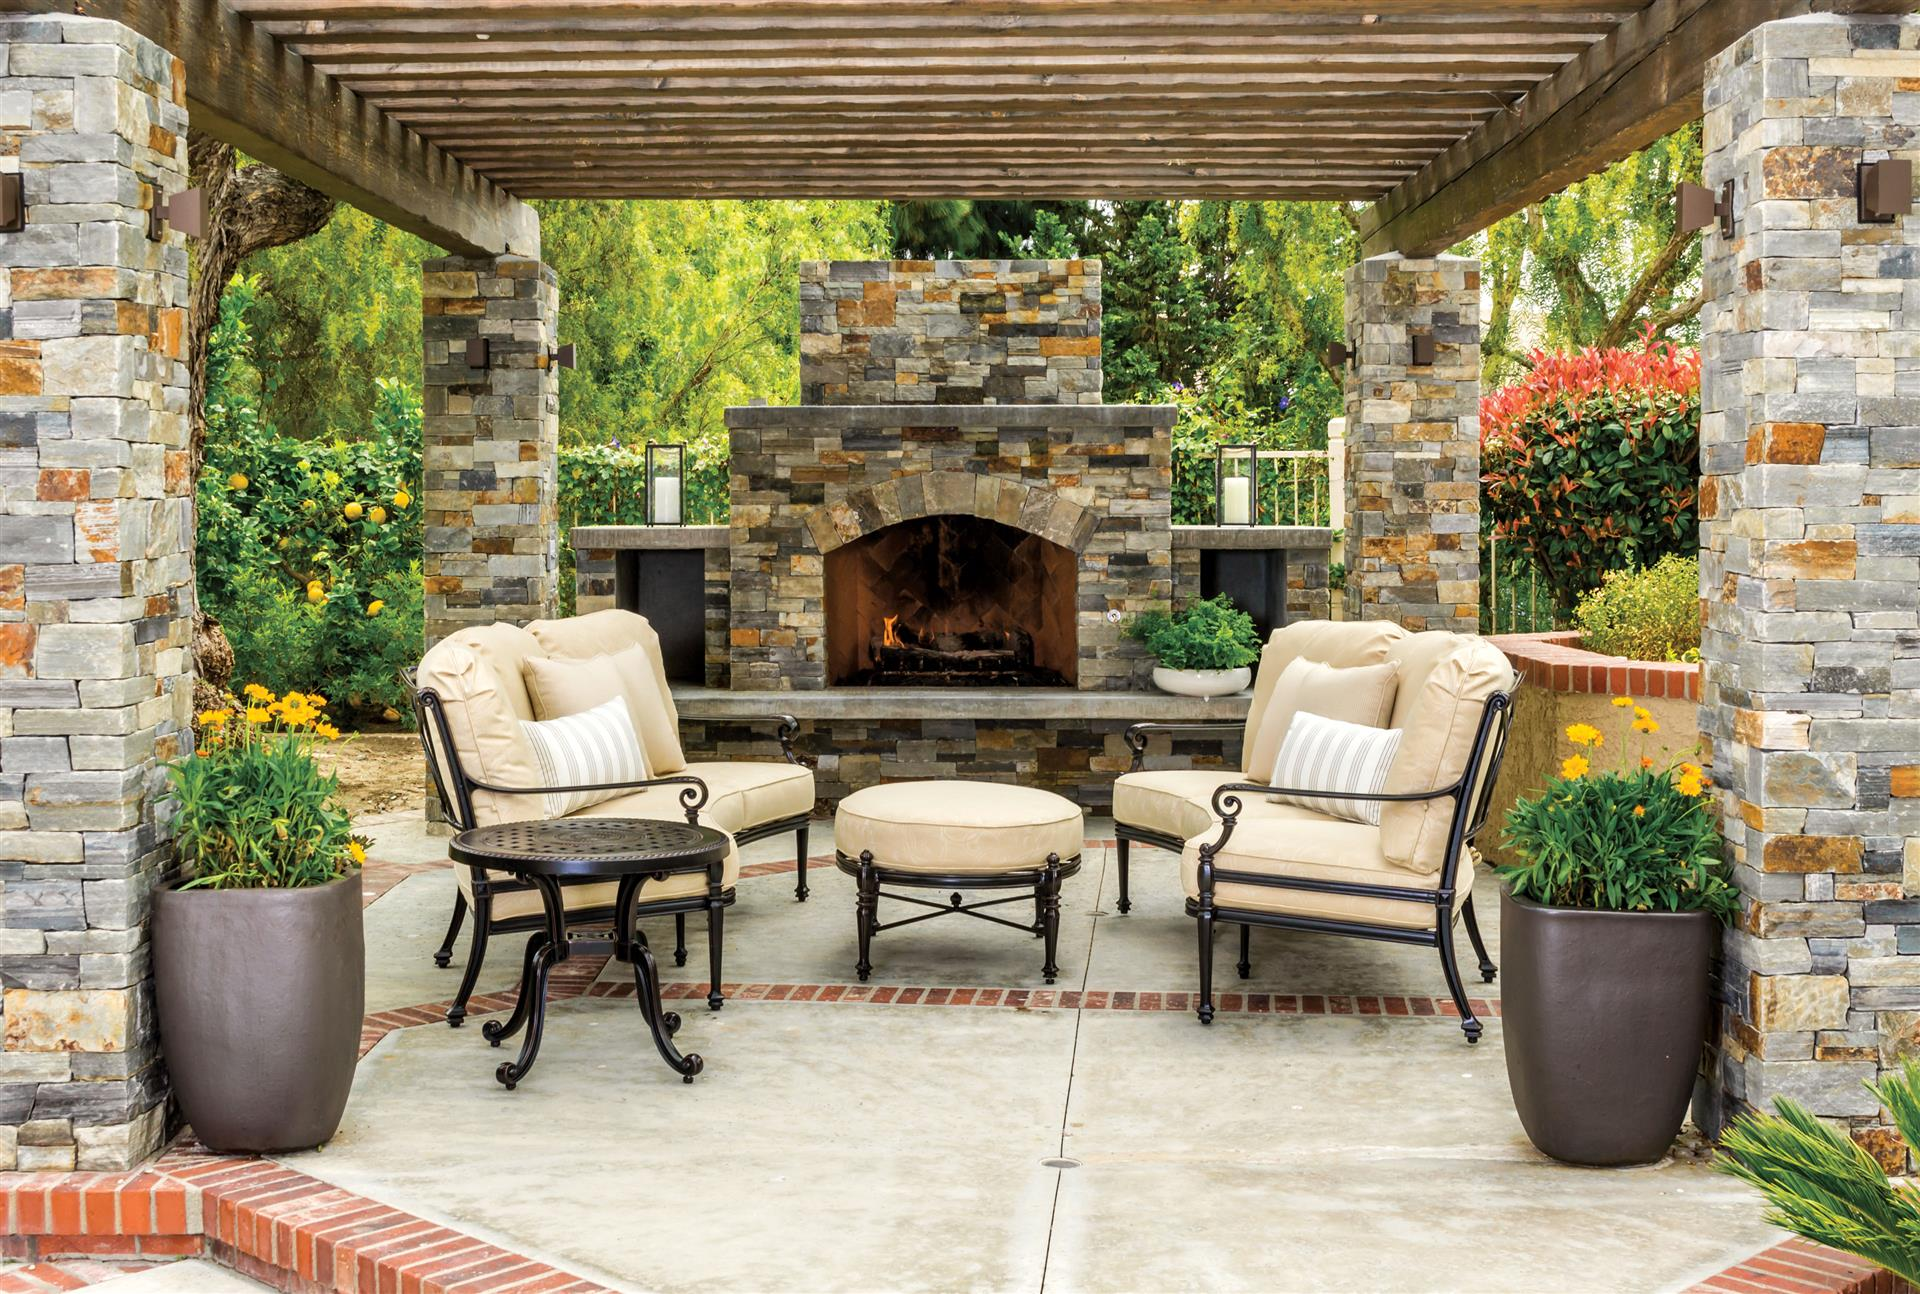 Outdoor Living - Sequoia Supply on Living Patio id=67716